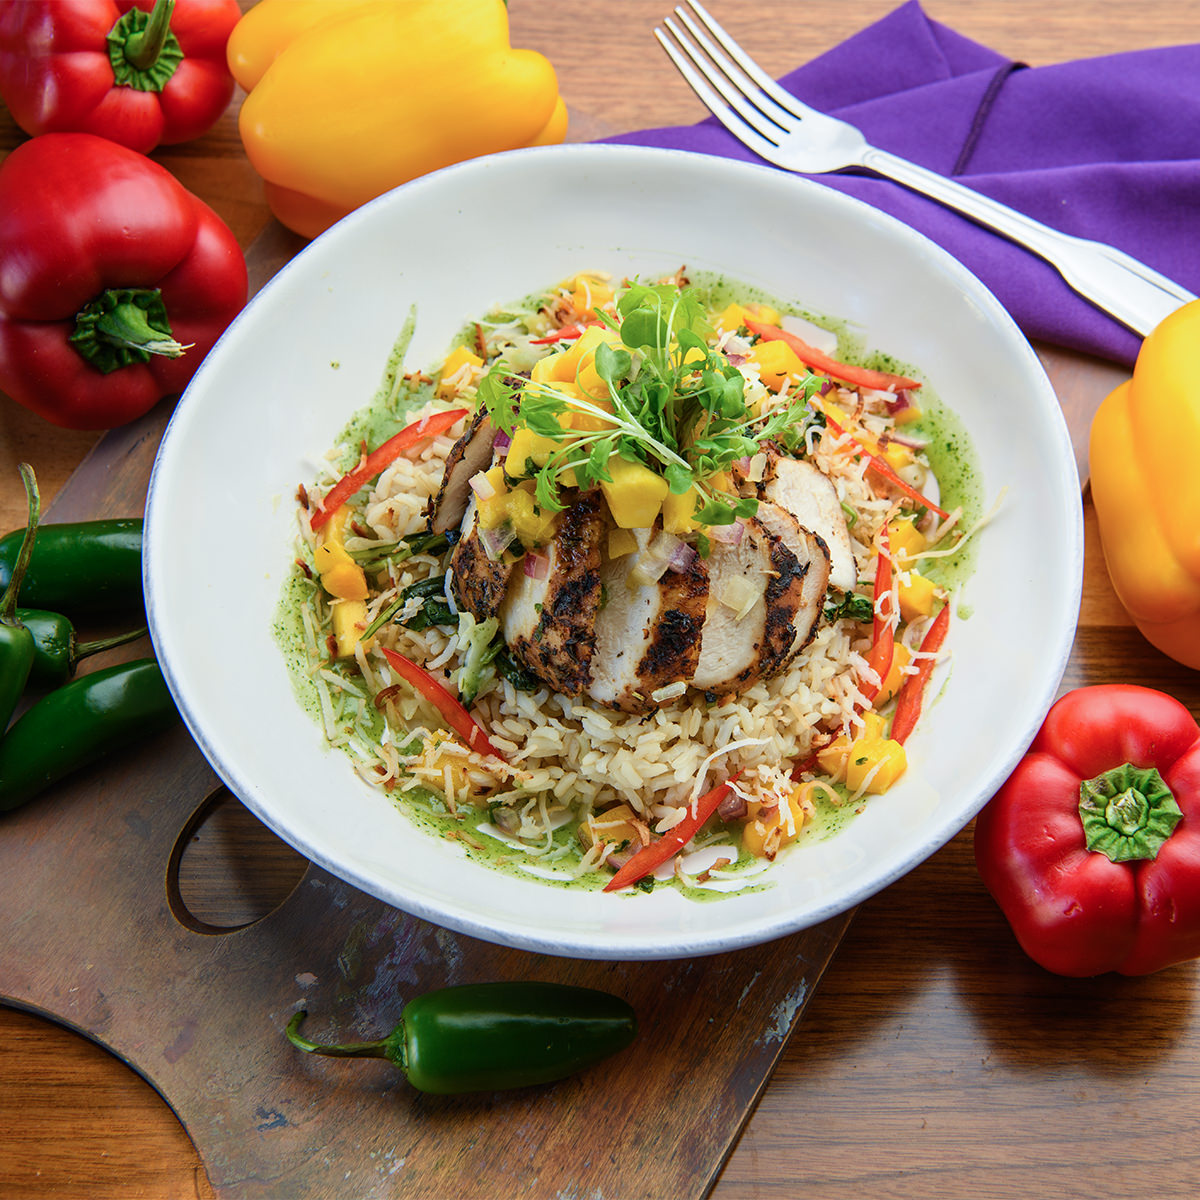 How To Prepare Island Jerk Chicken Bowl